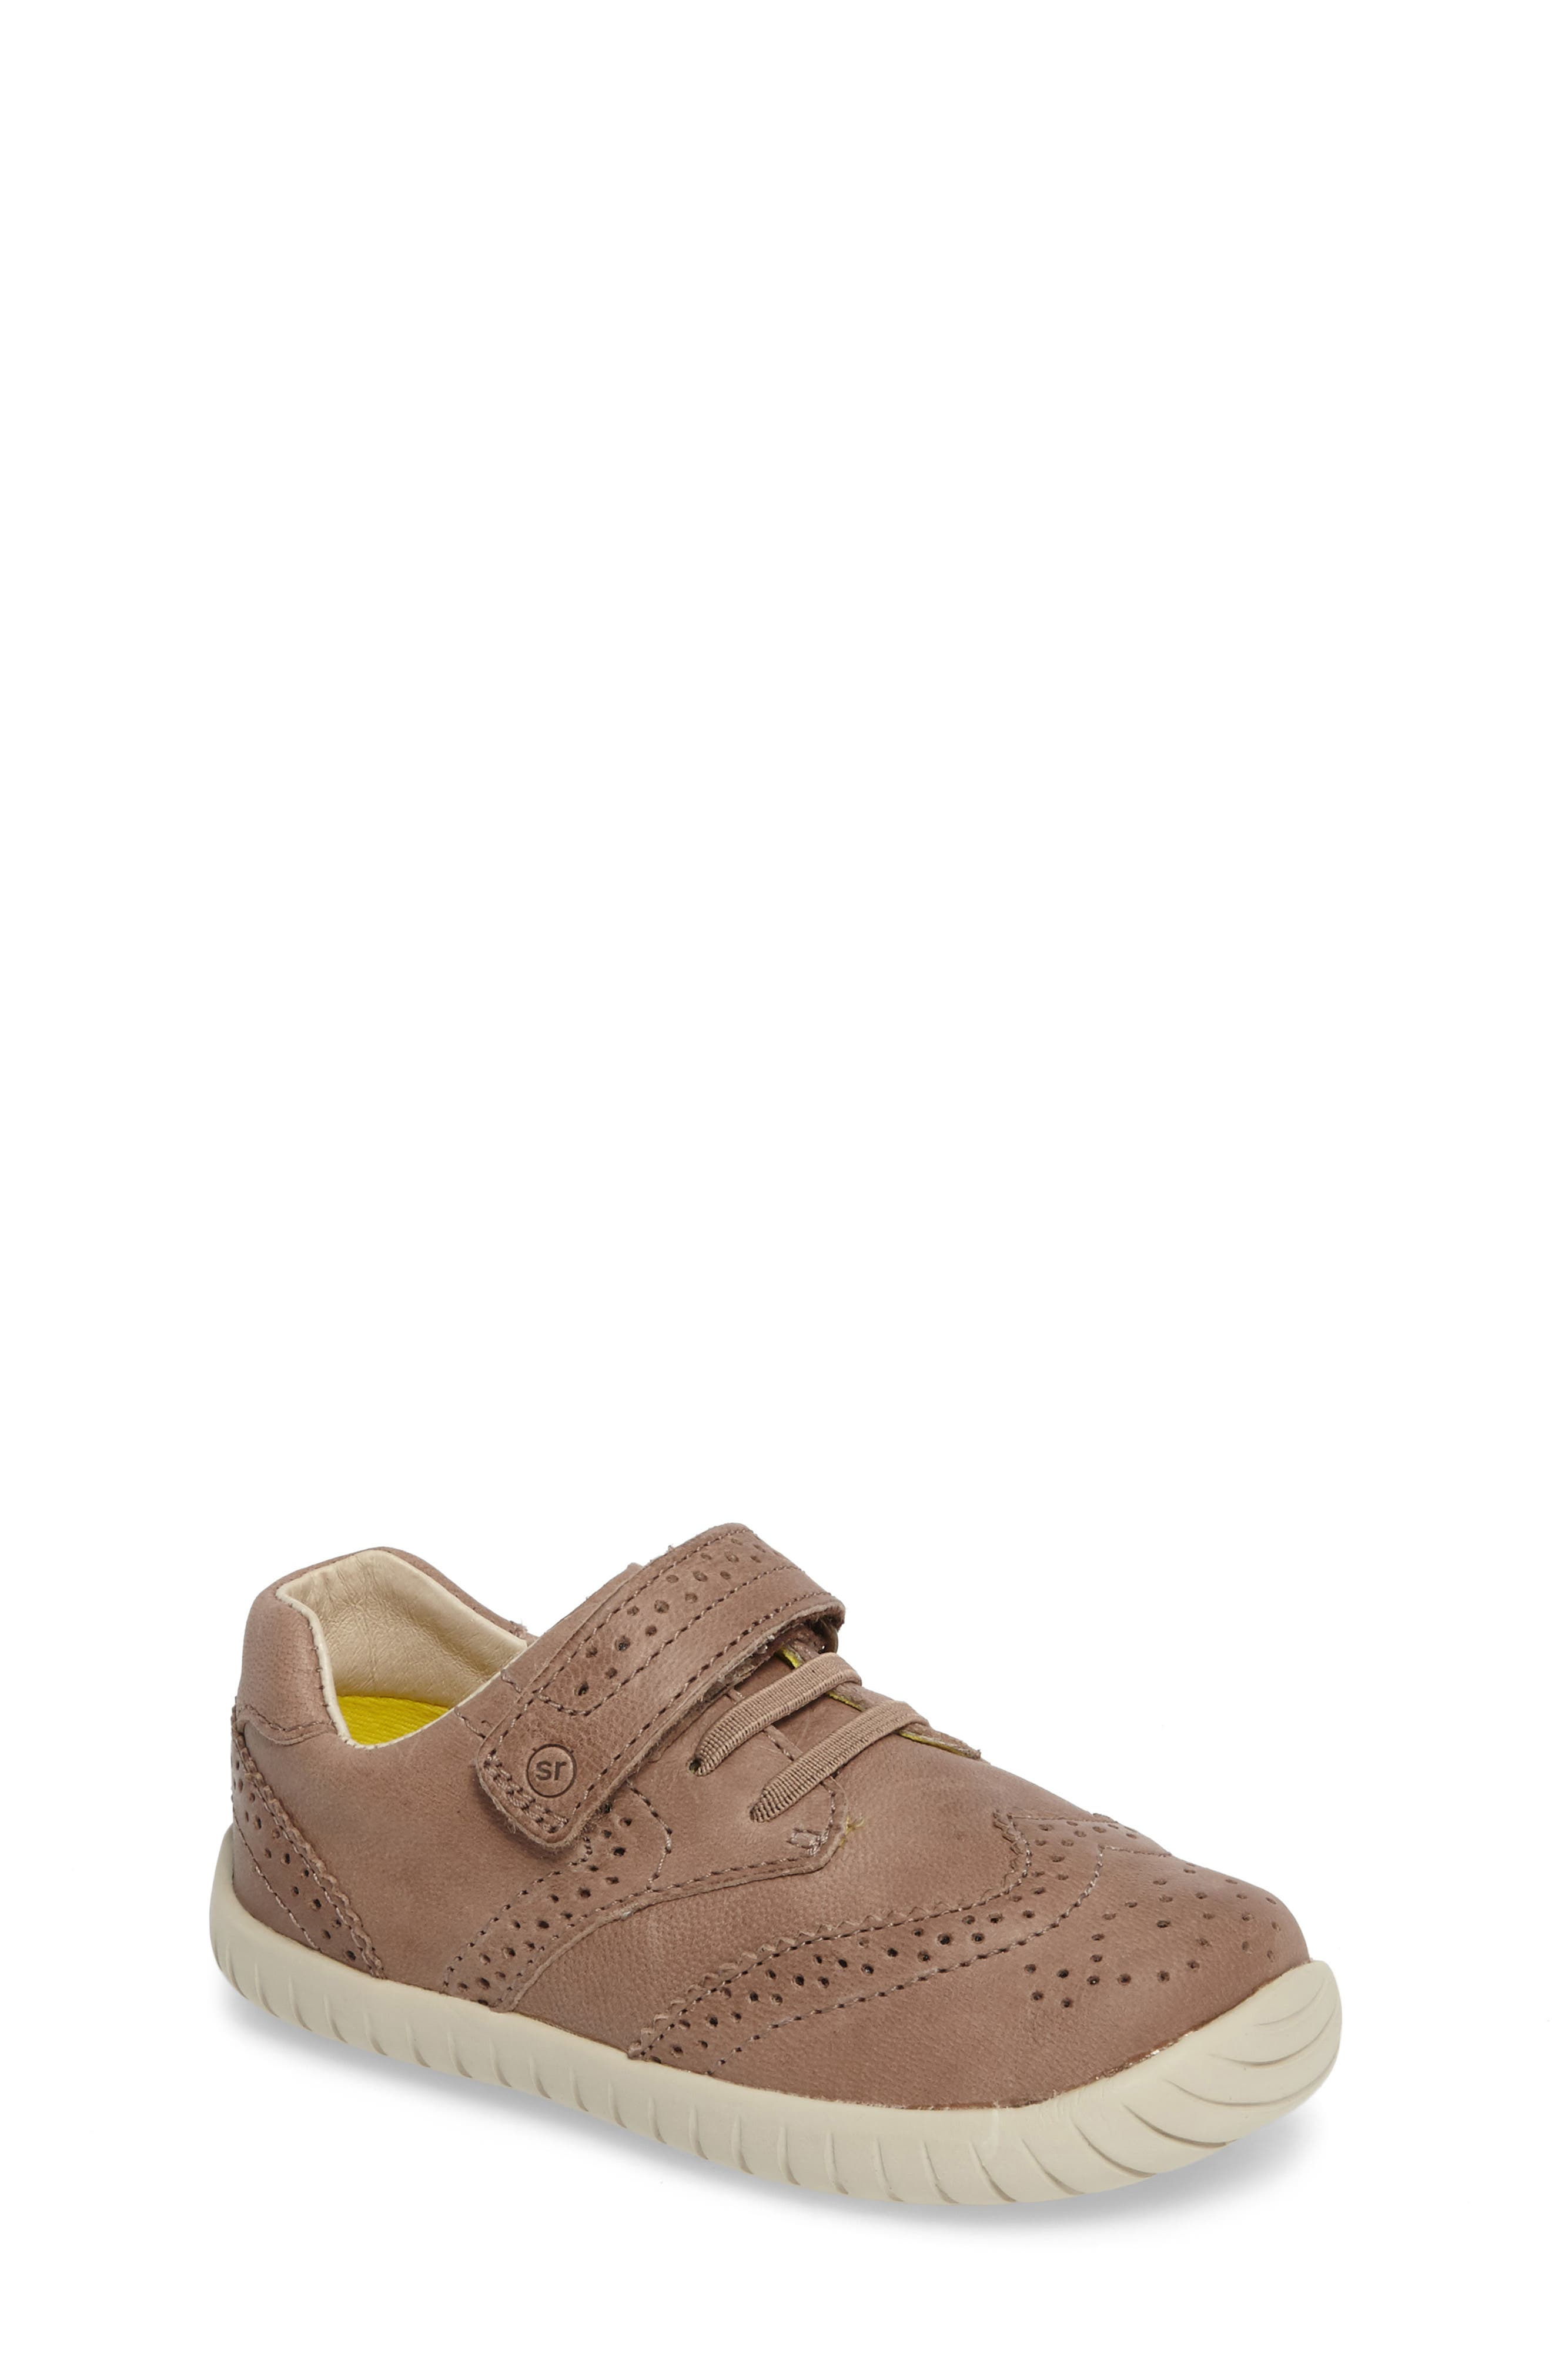 Alternate Image 1 Selected - Stride Rite Addison Wingtip Sneaker (Baby, Walker & Toddler)